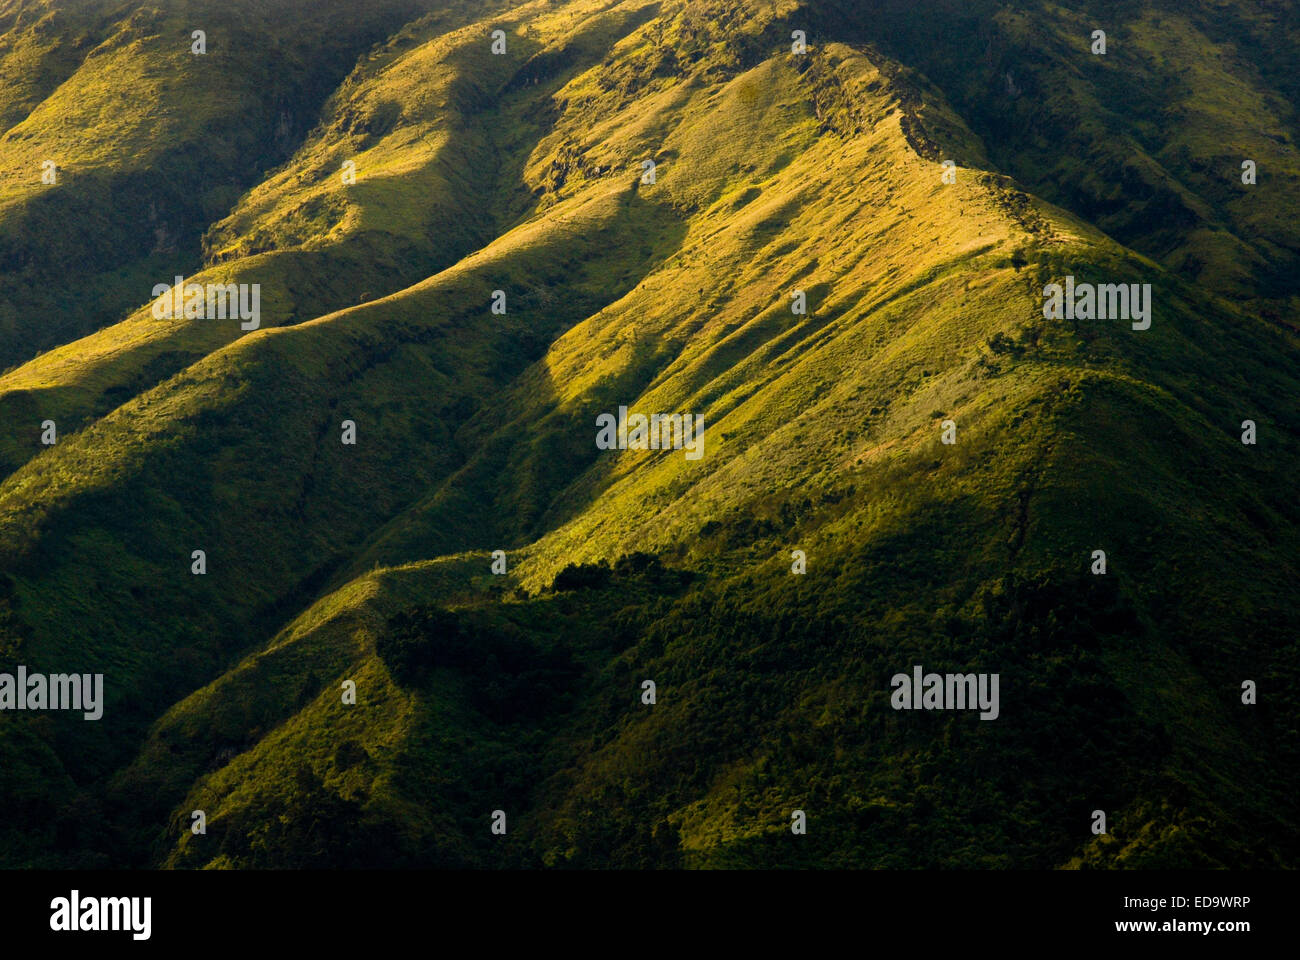 Crêtes de montagne volcan Sundoro, Central Java, Indonésie. Photo Stock